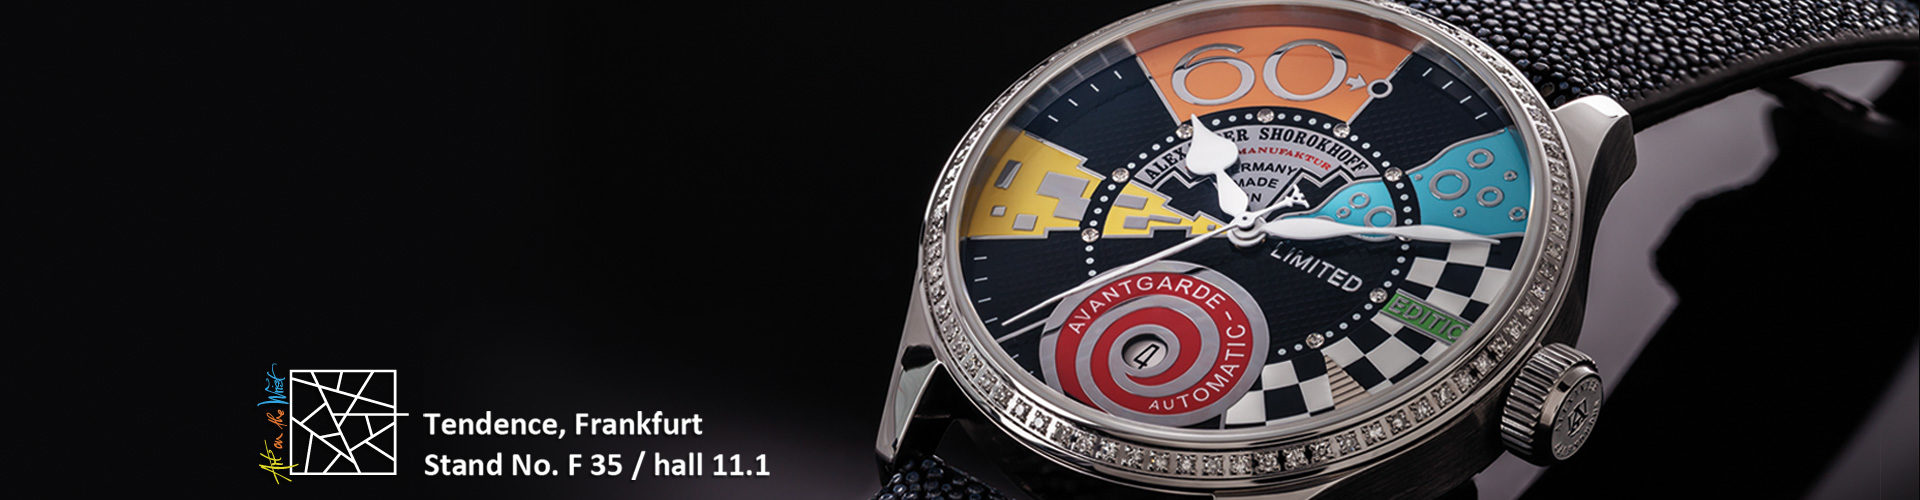 tendence AS awarded watch